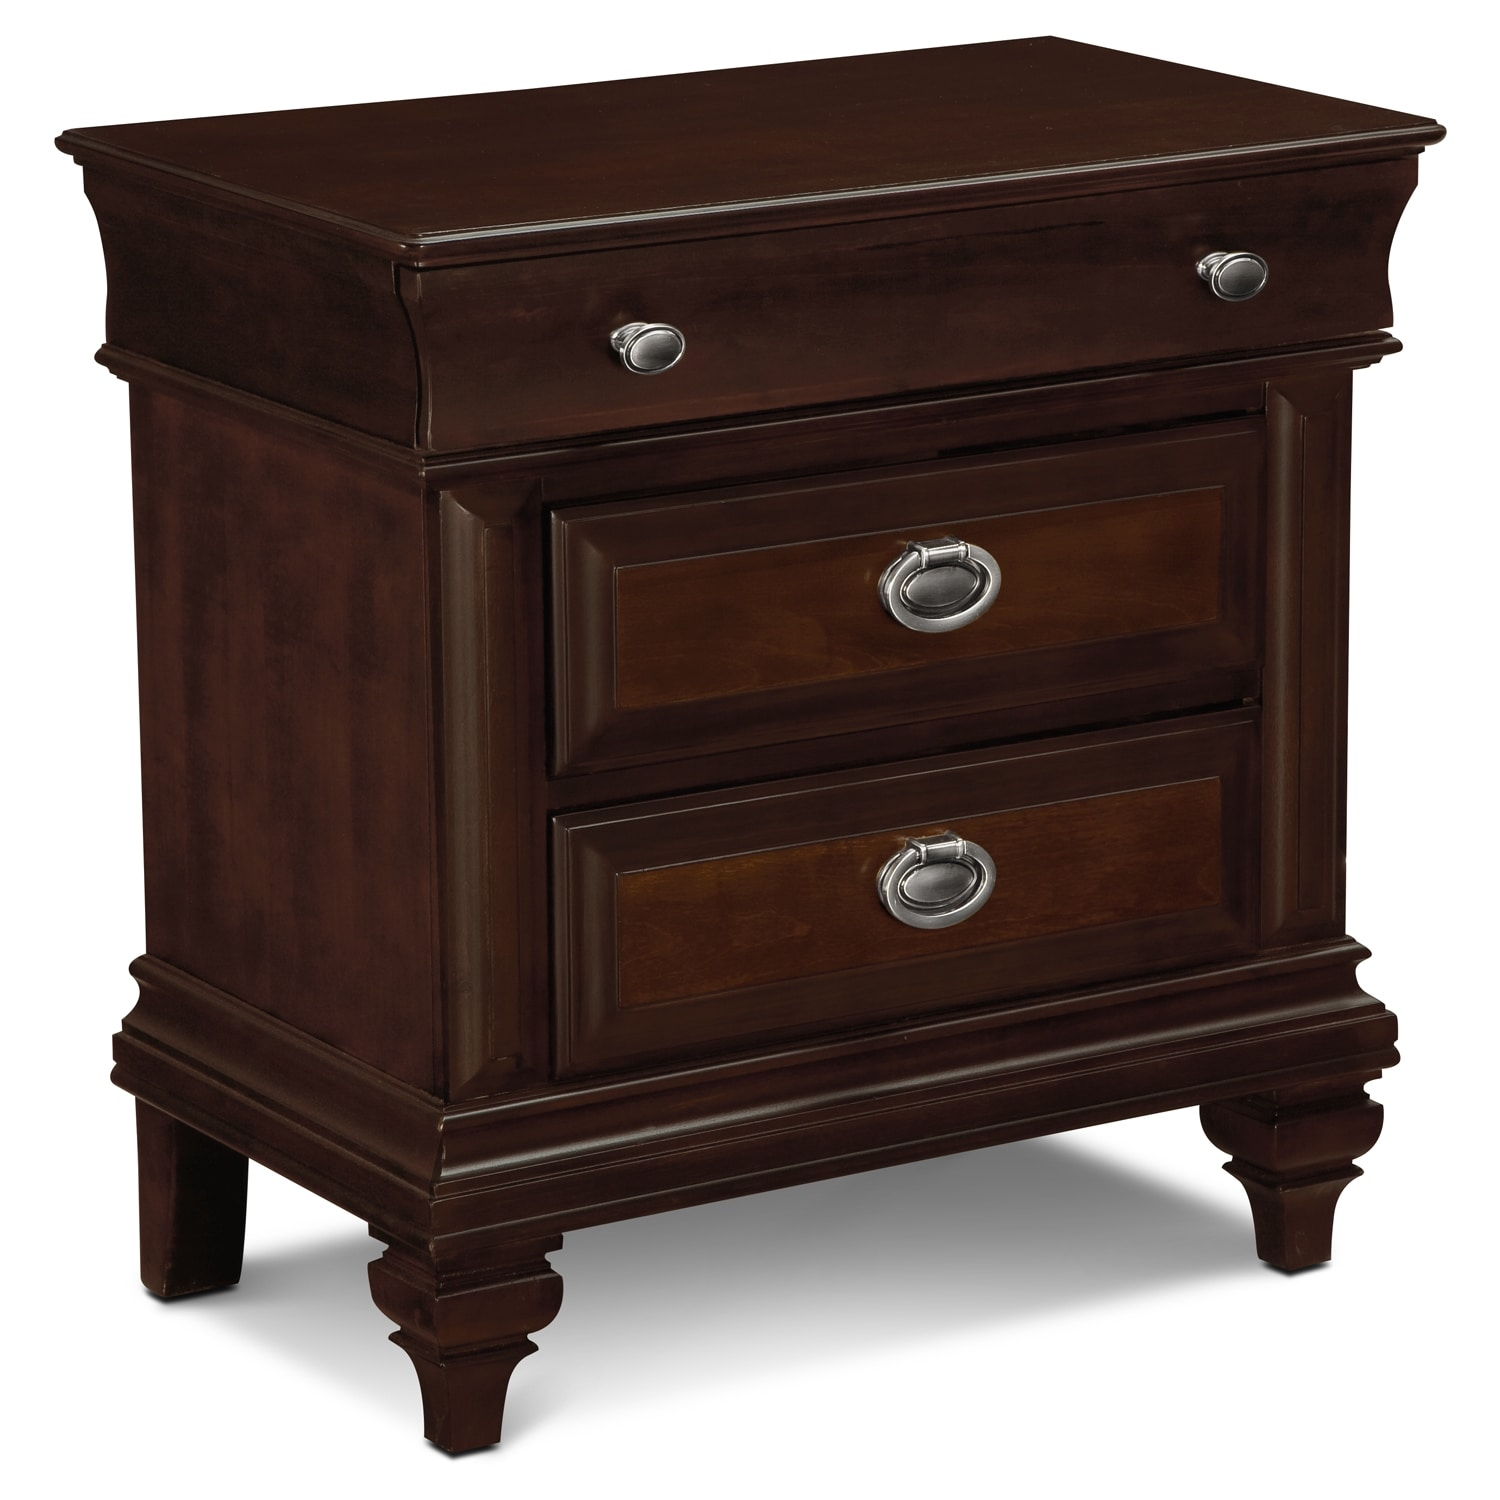 Bedroom Furniture - Manhattan Nightstand